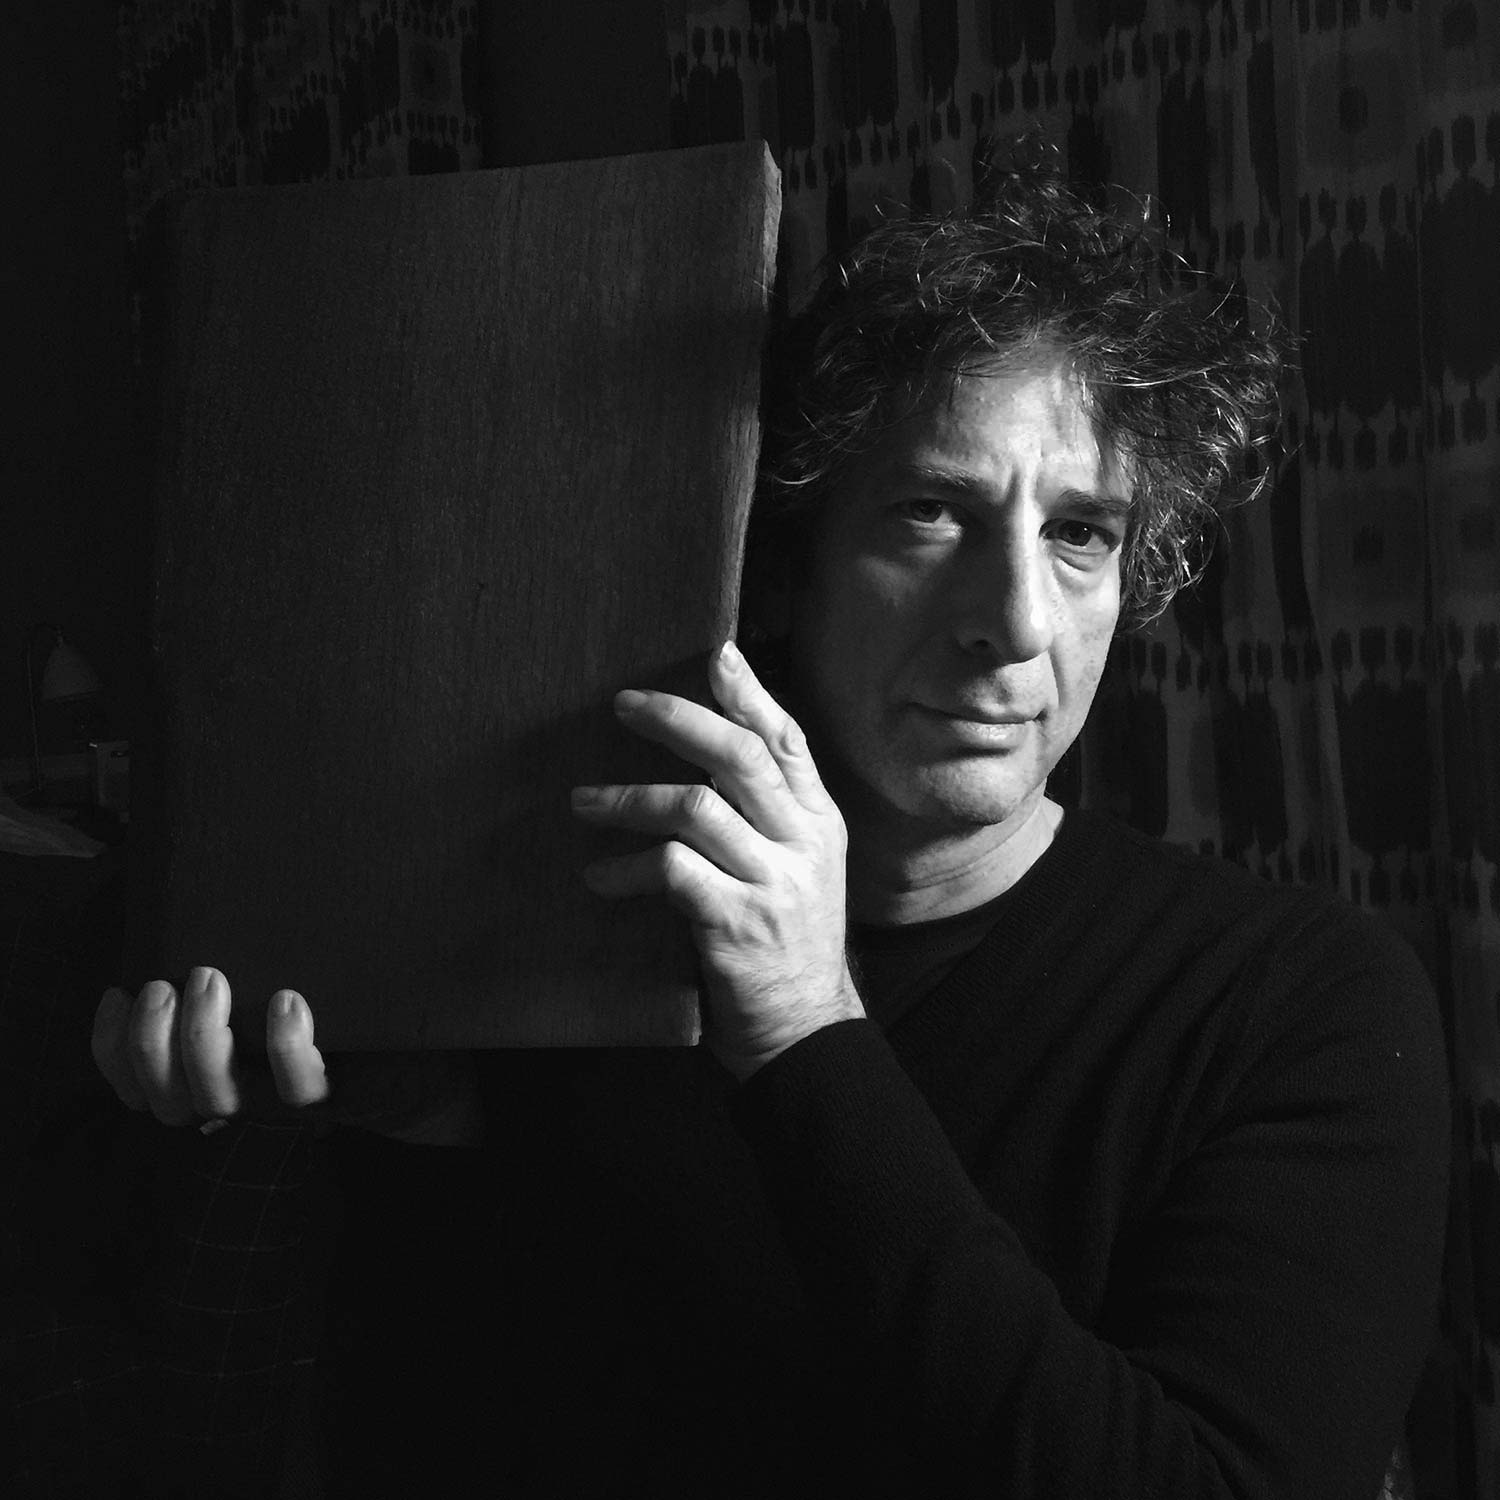 Neil-with-the-blank-book-bw.jpg